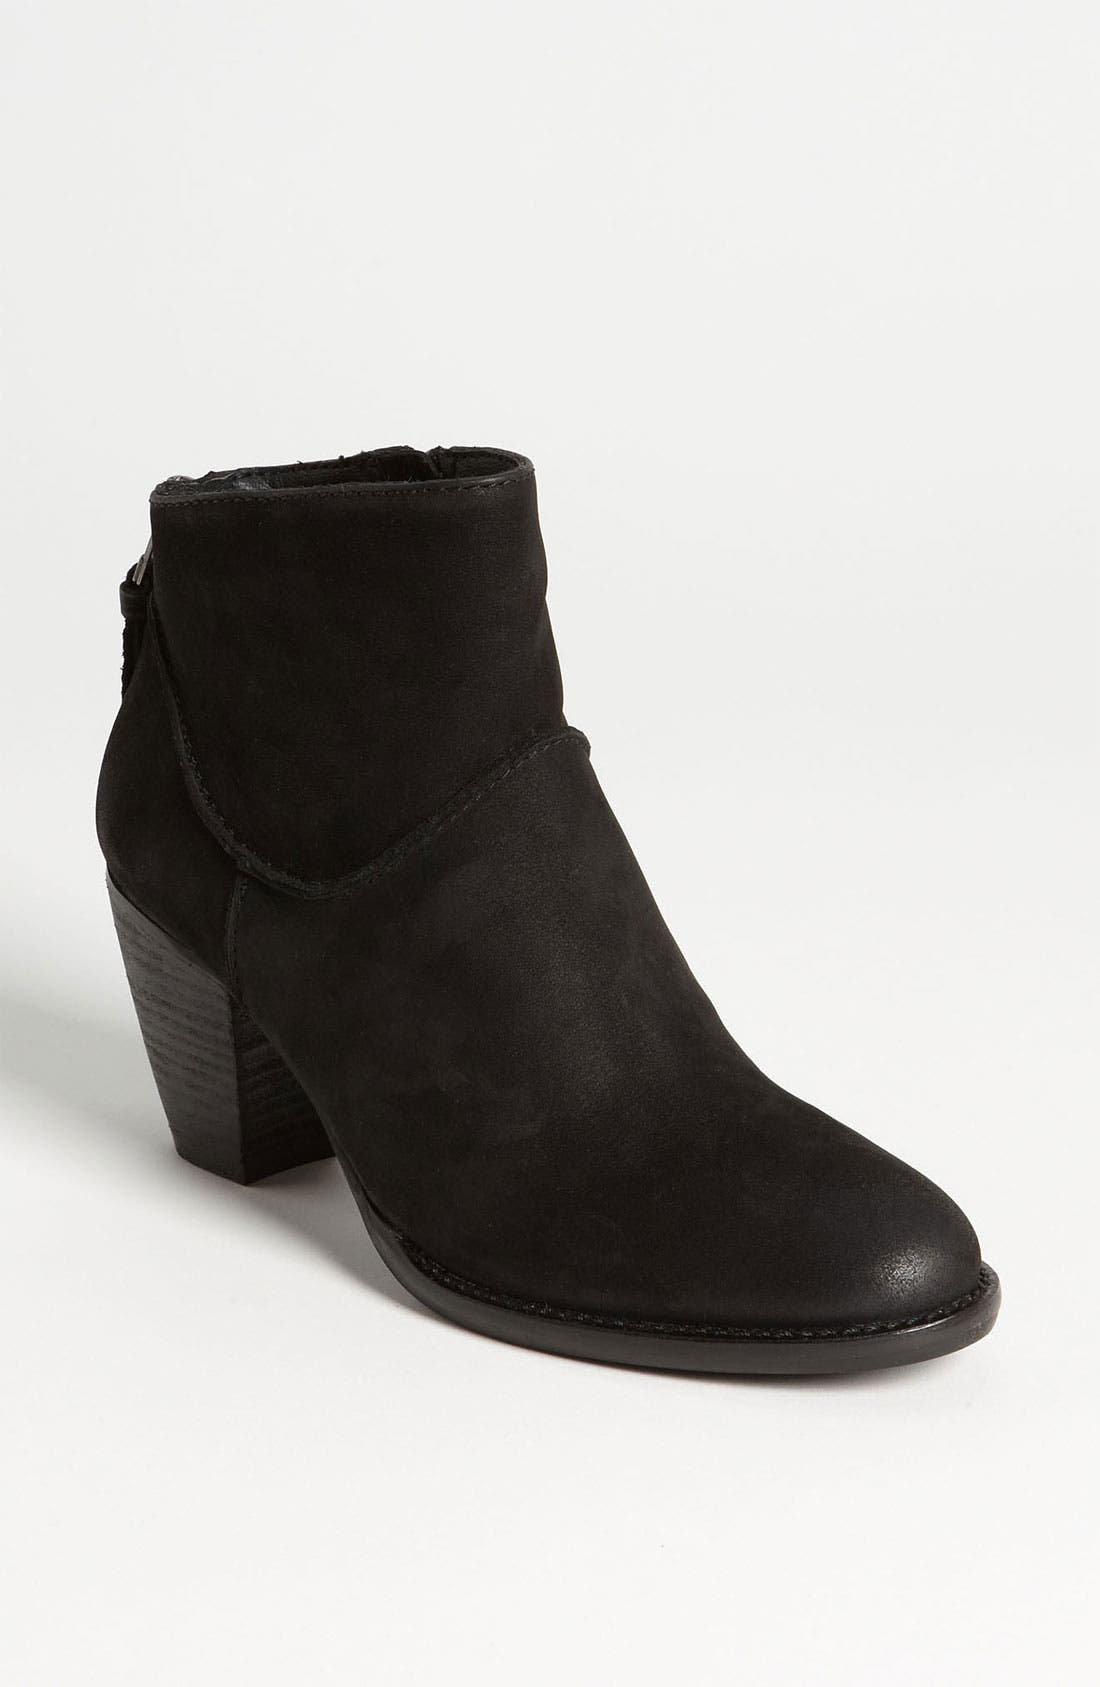 Main Image - Steven by Steve Madden 'Wesleyy' Bootie